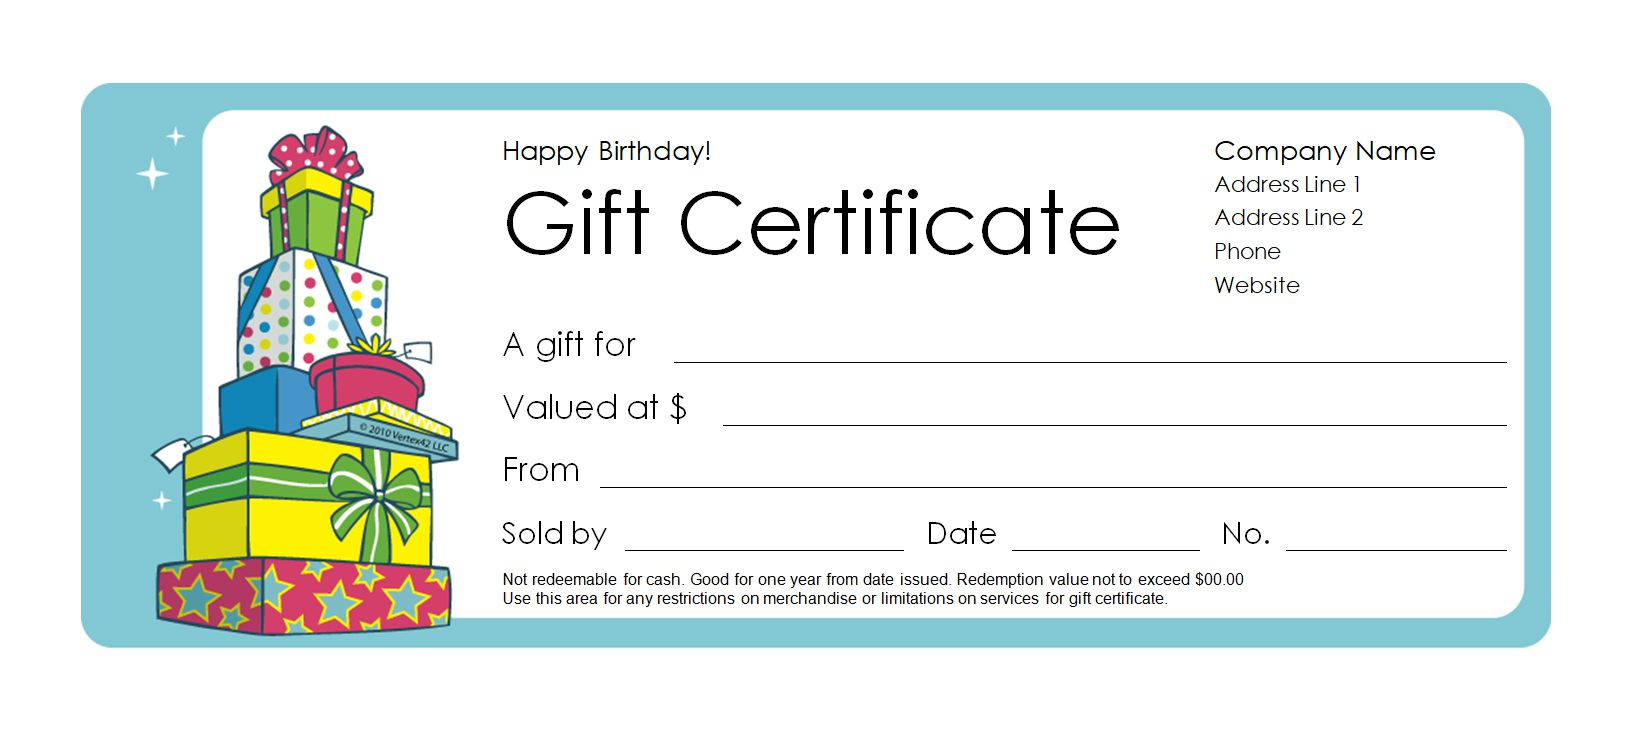 173 free gift certificate templates you can customize 1betcityfo Images